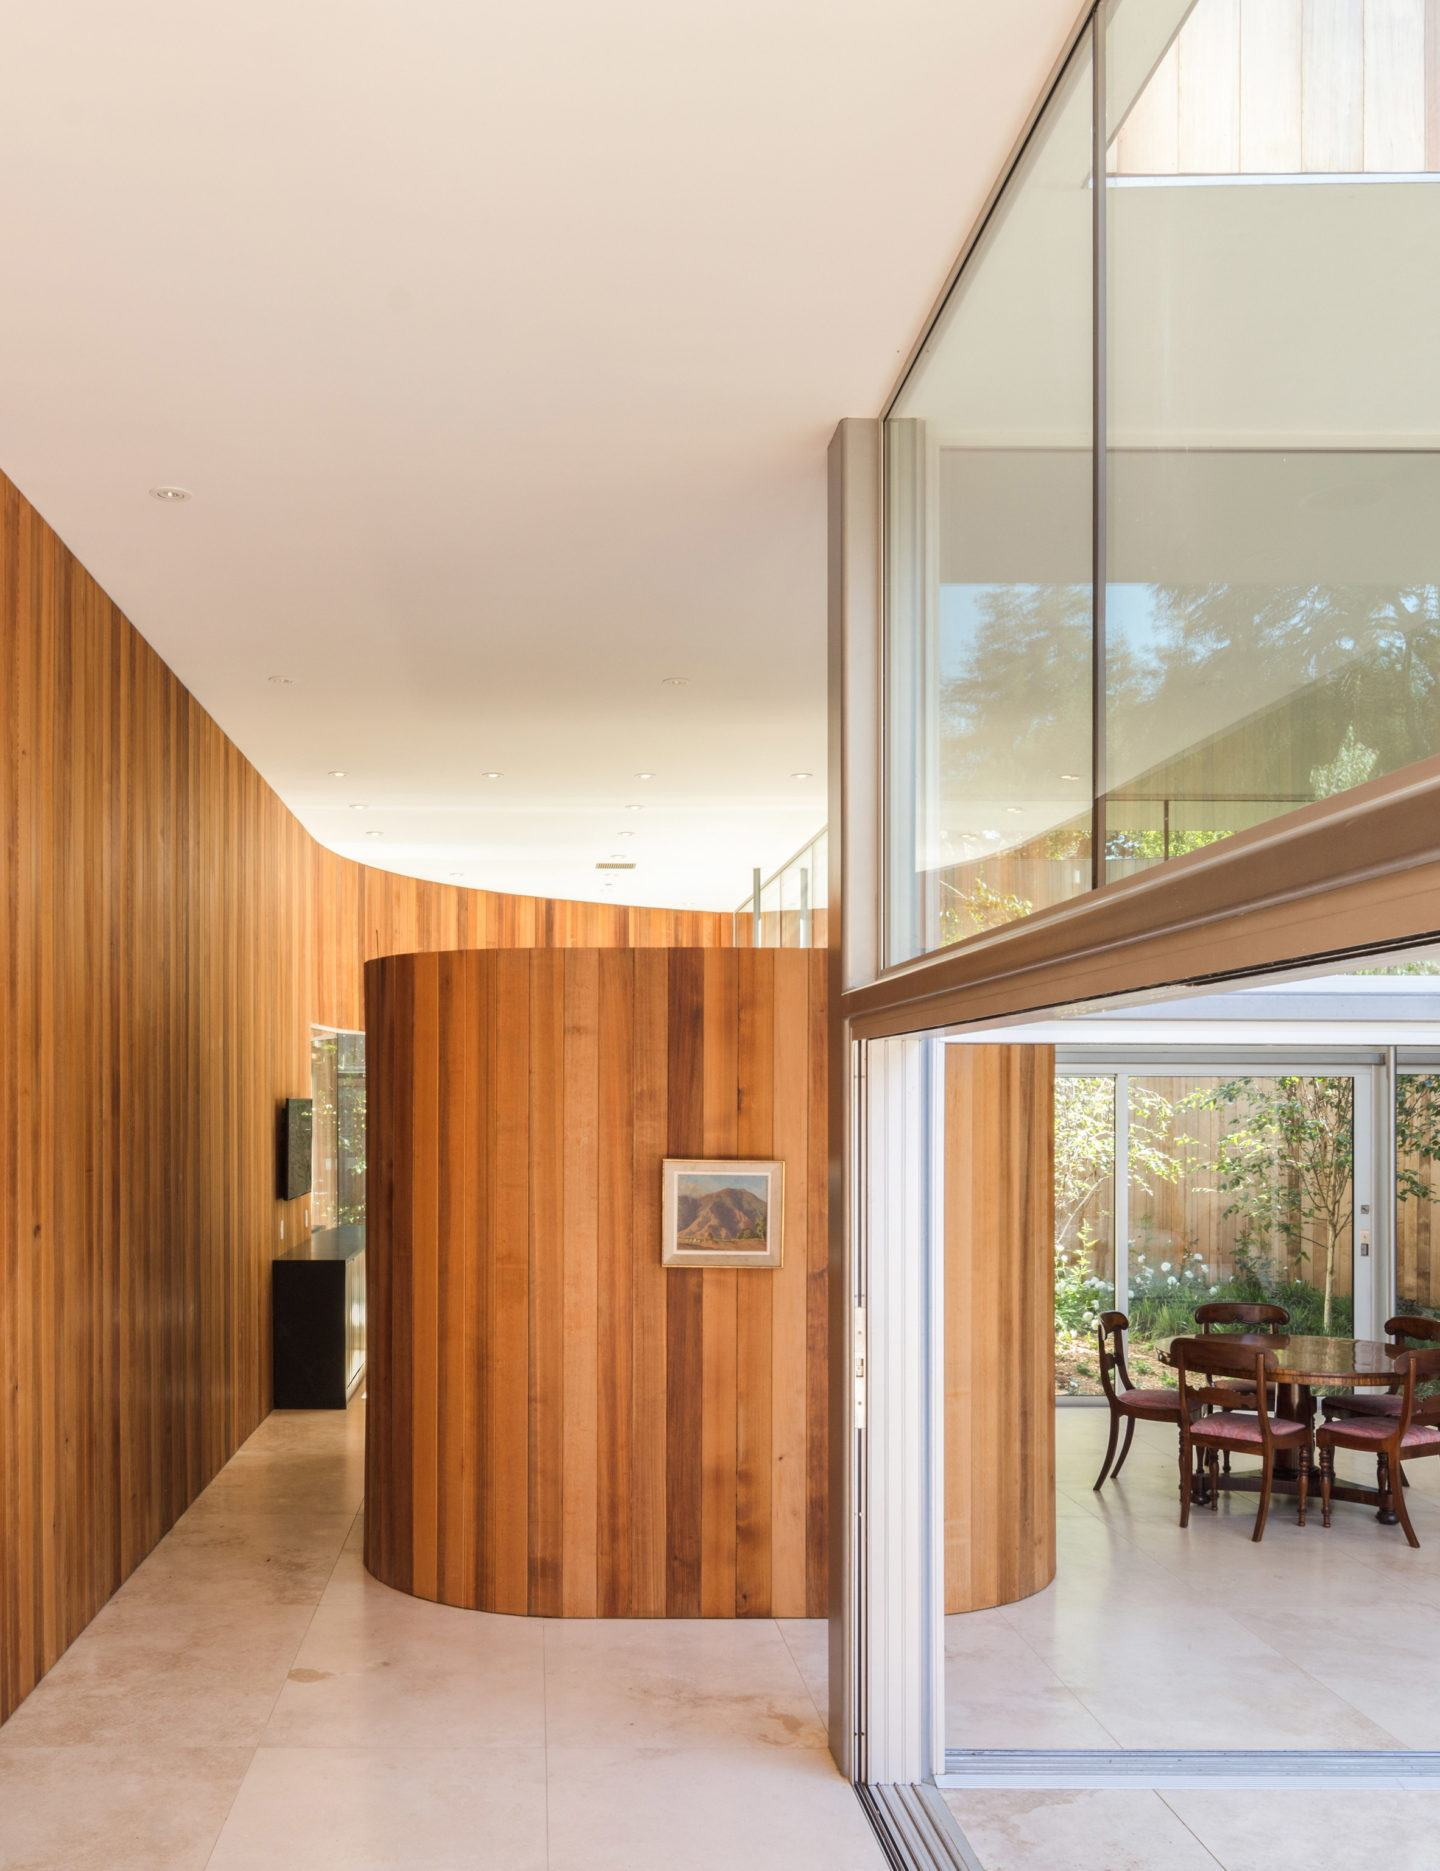 IGNANT-Architecture-Craig-Steely-Architecture-Roofless-House-1